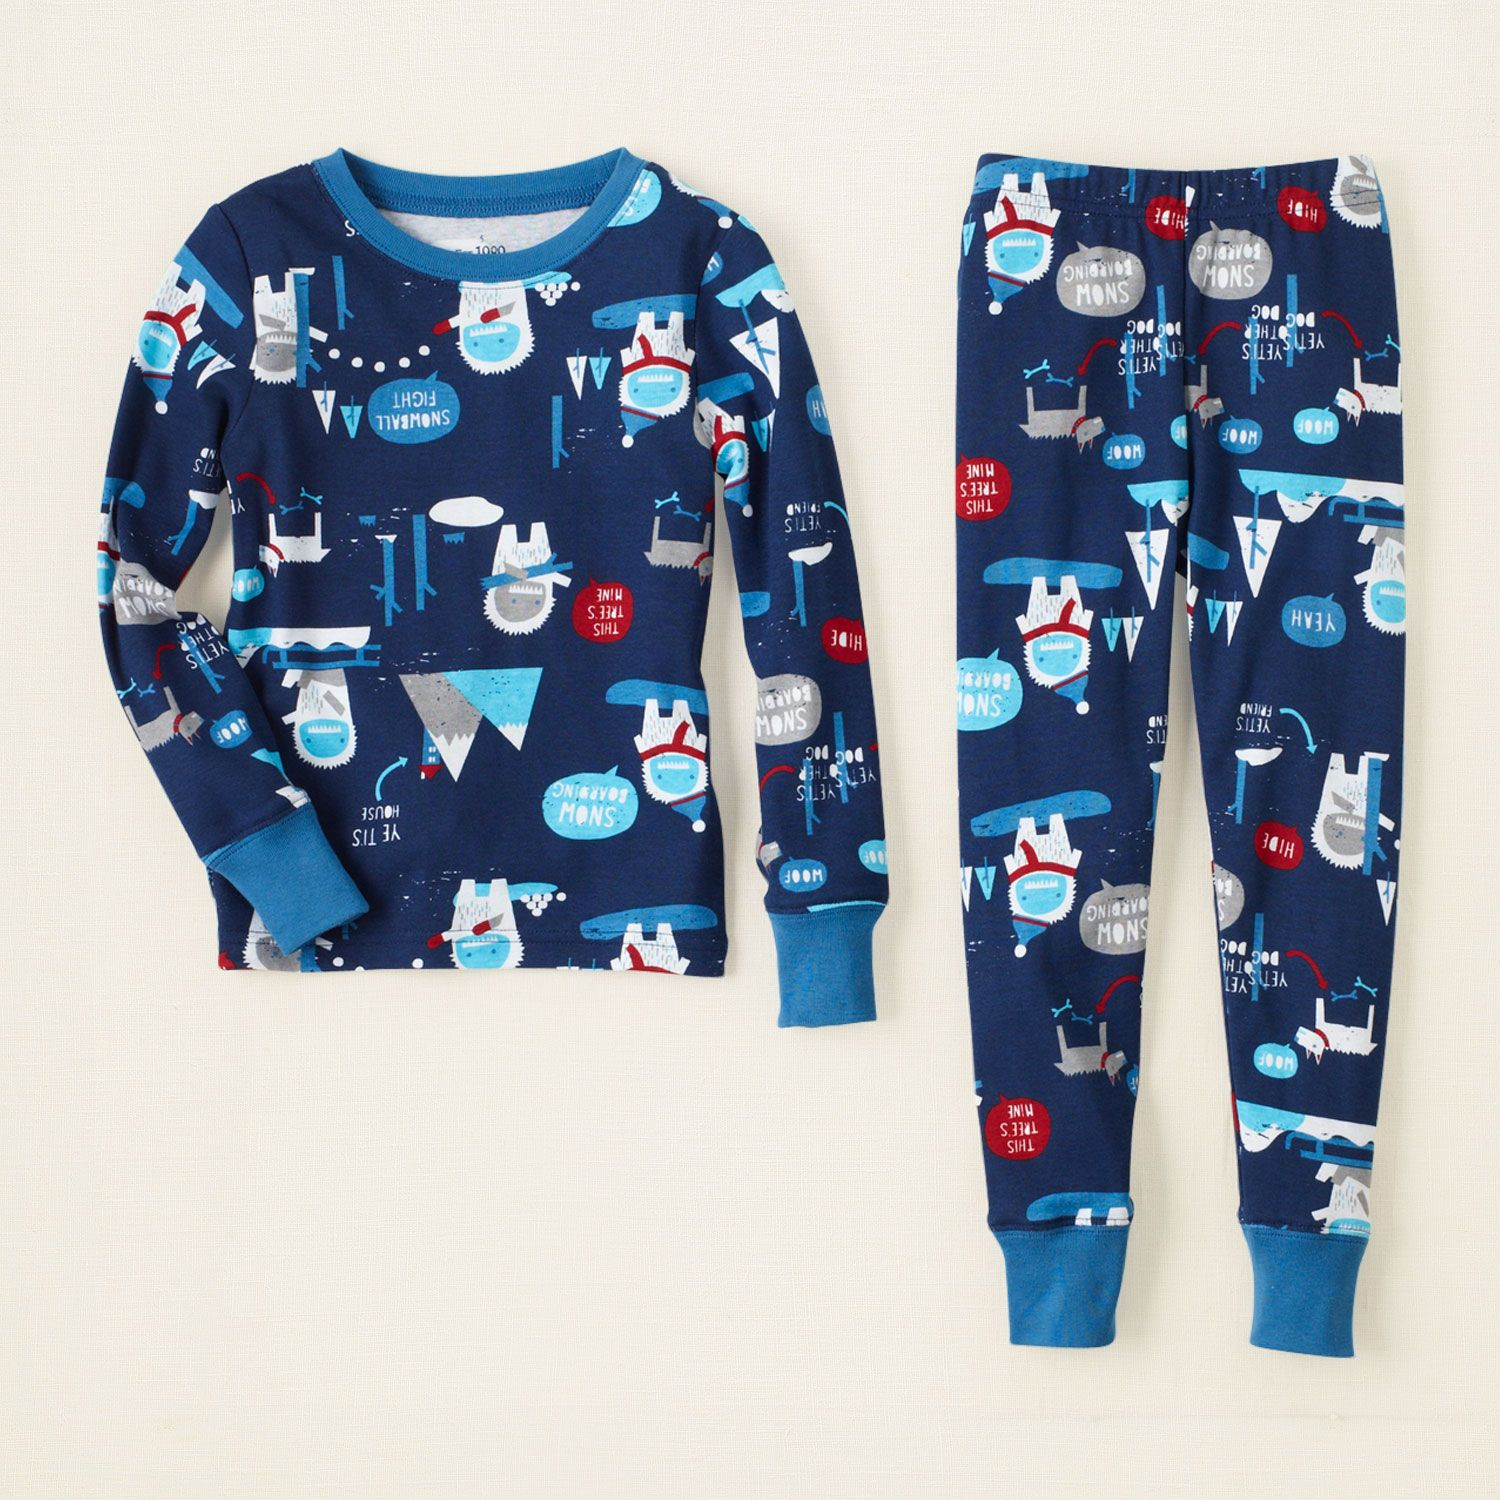 baby boy - sleep & underwear - yeti cotton pjs | Children's ...